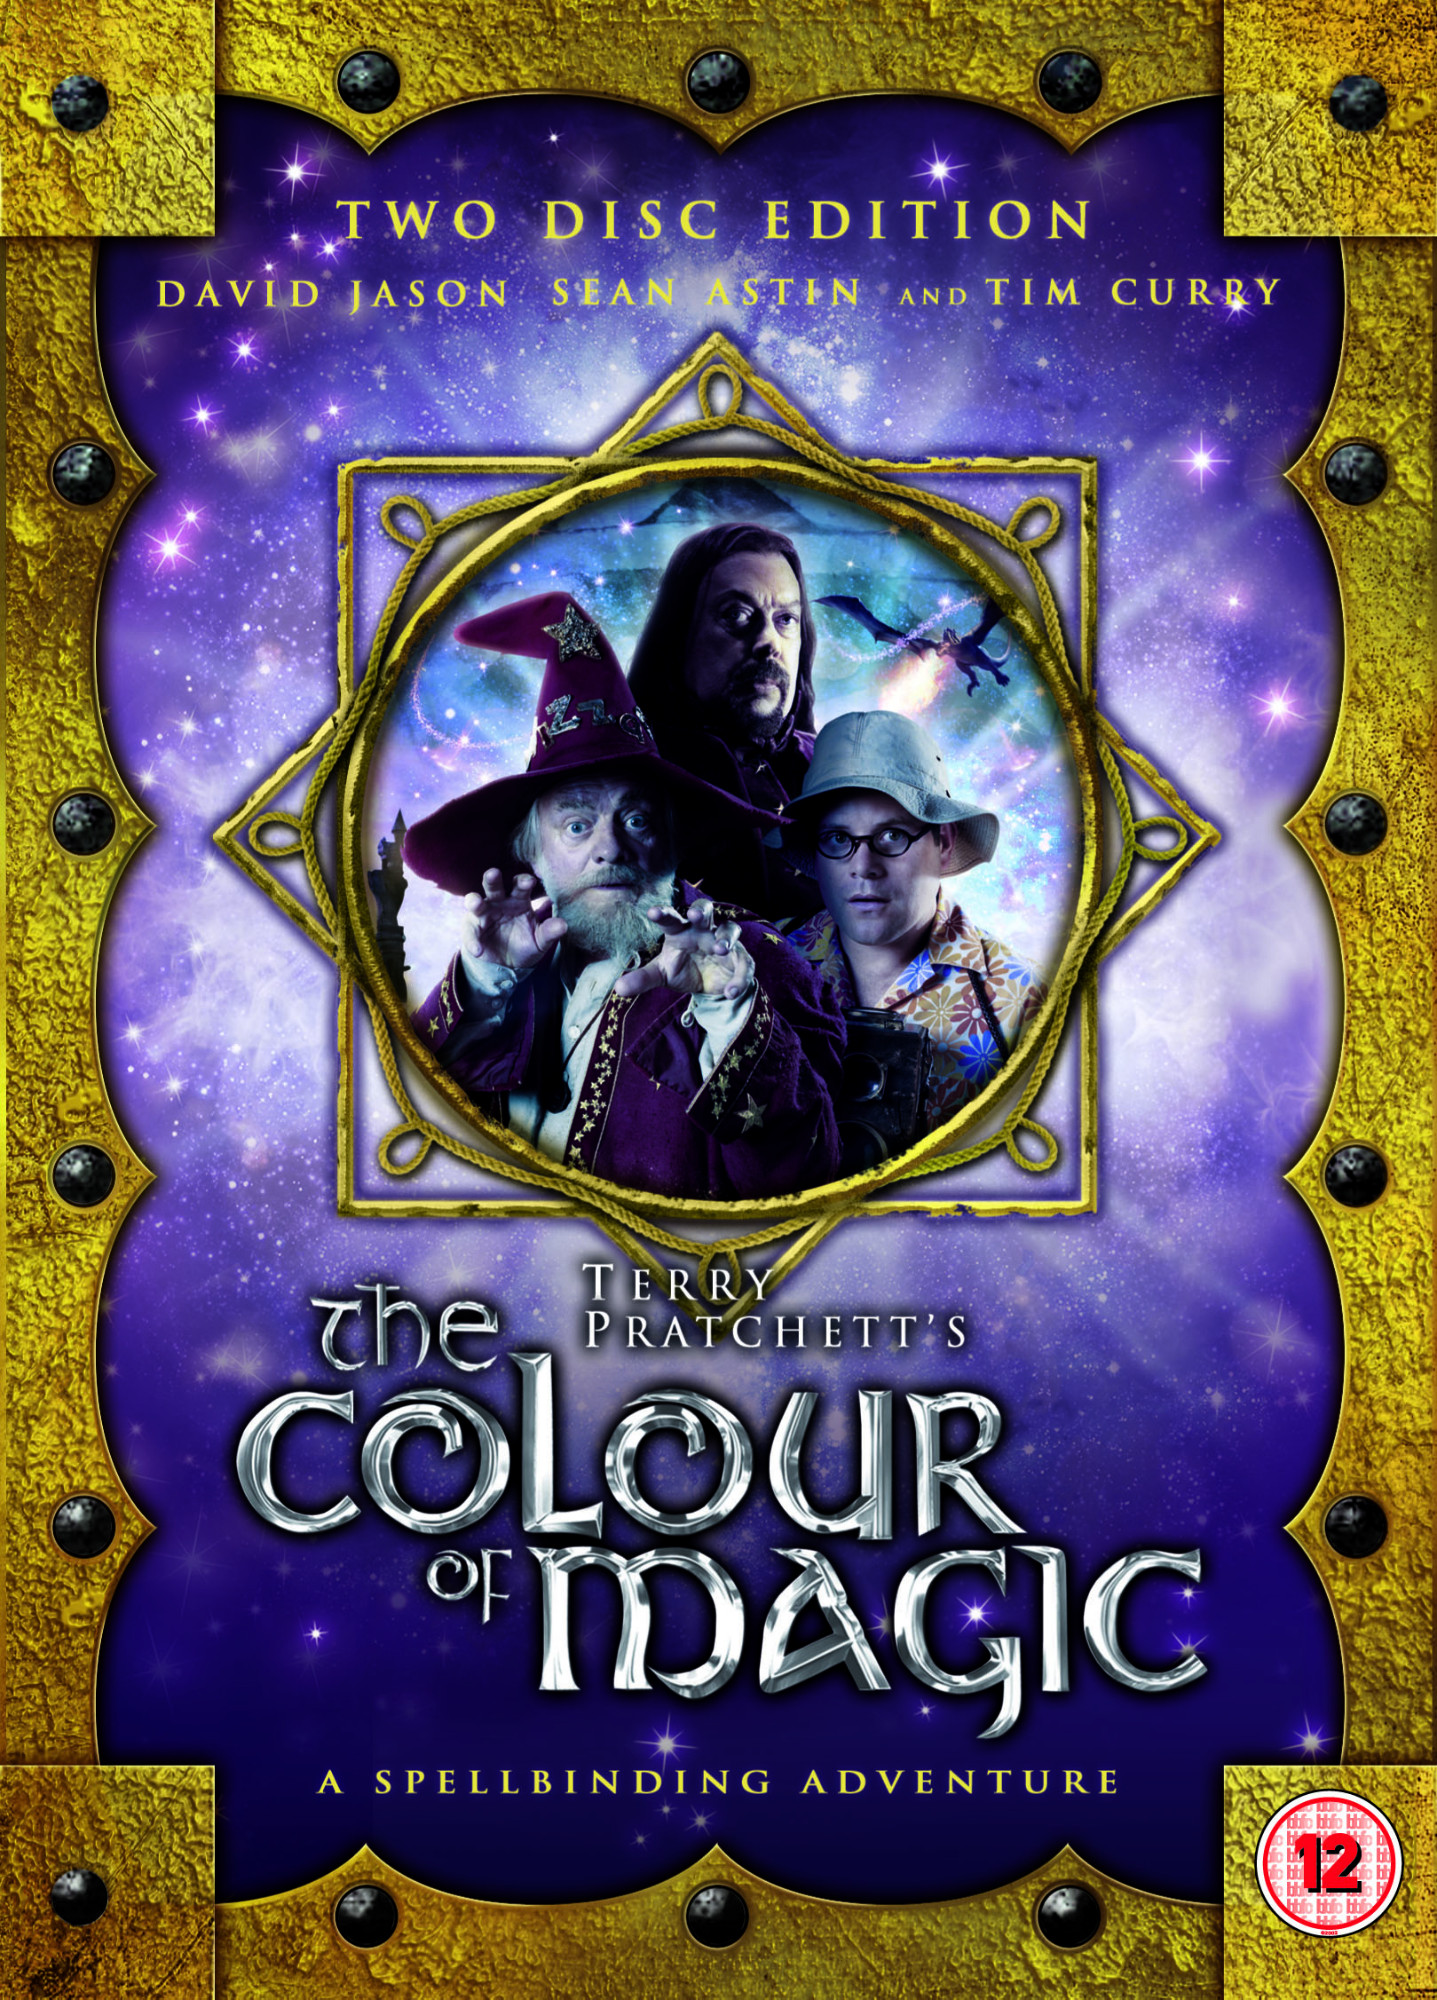 The Colour of Magic UK DVD Covers